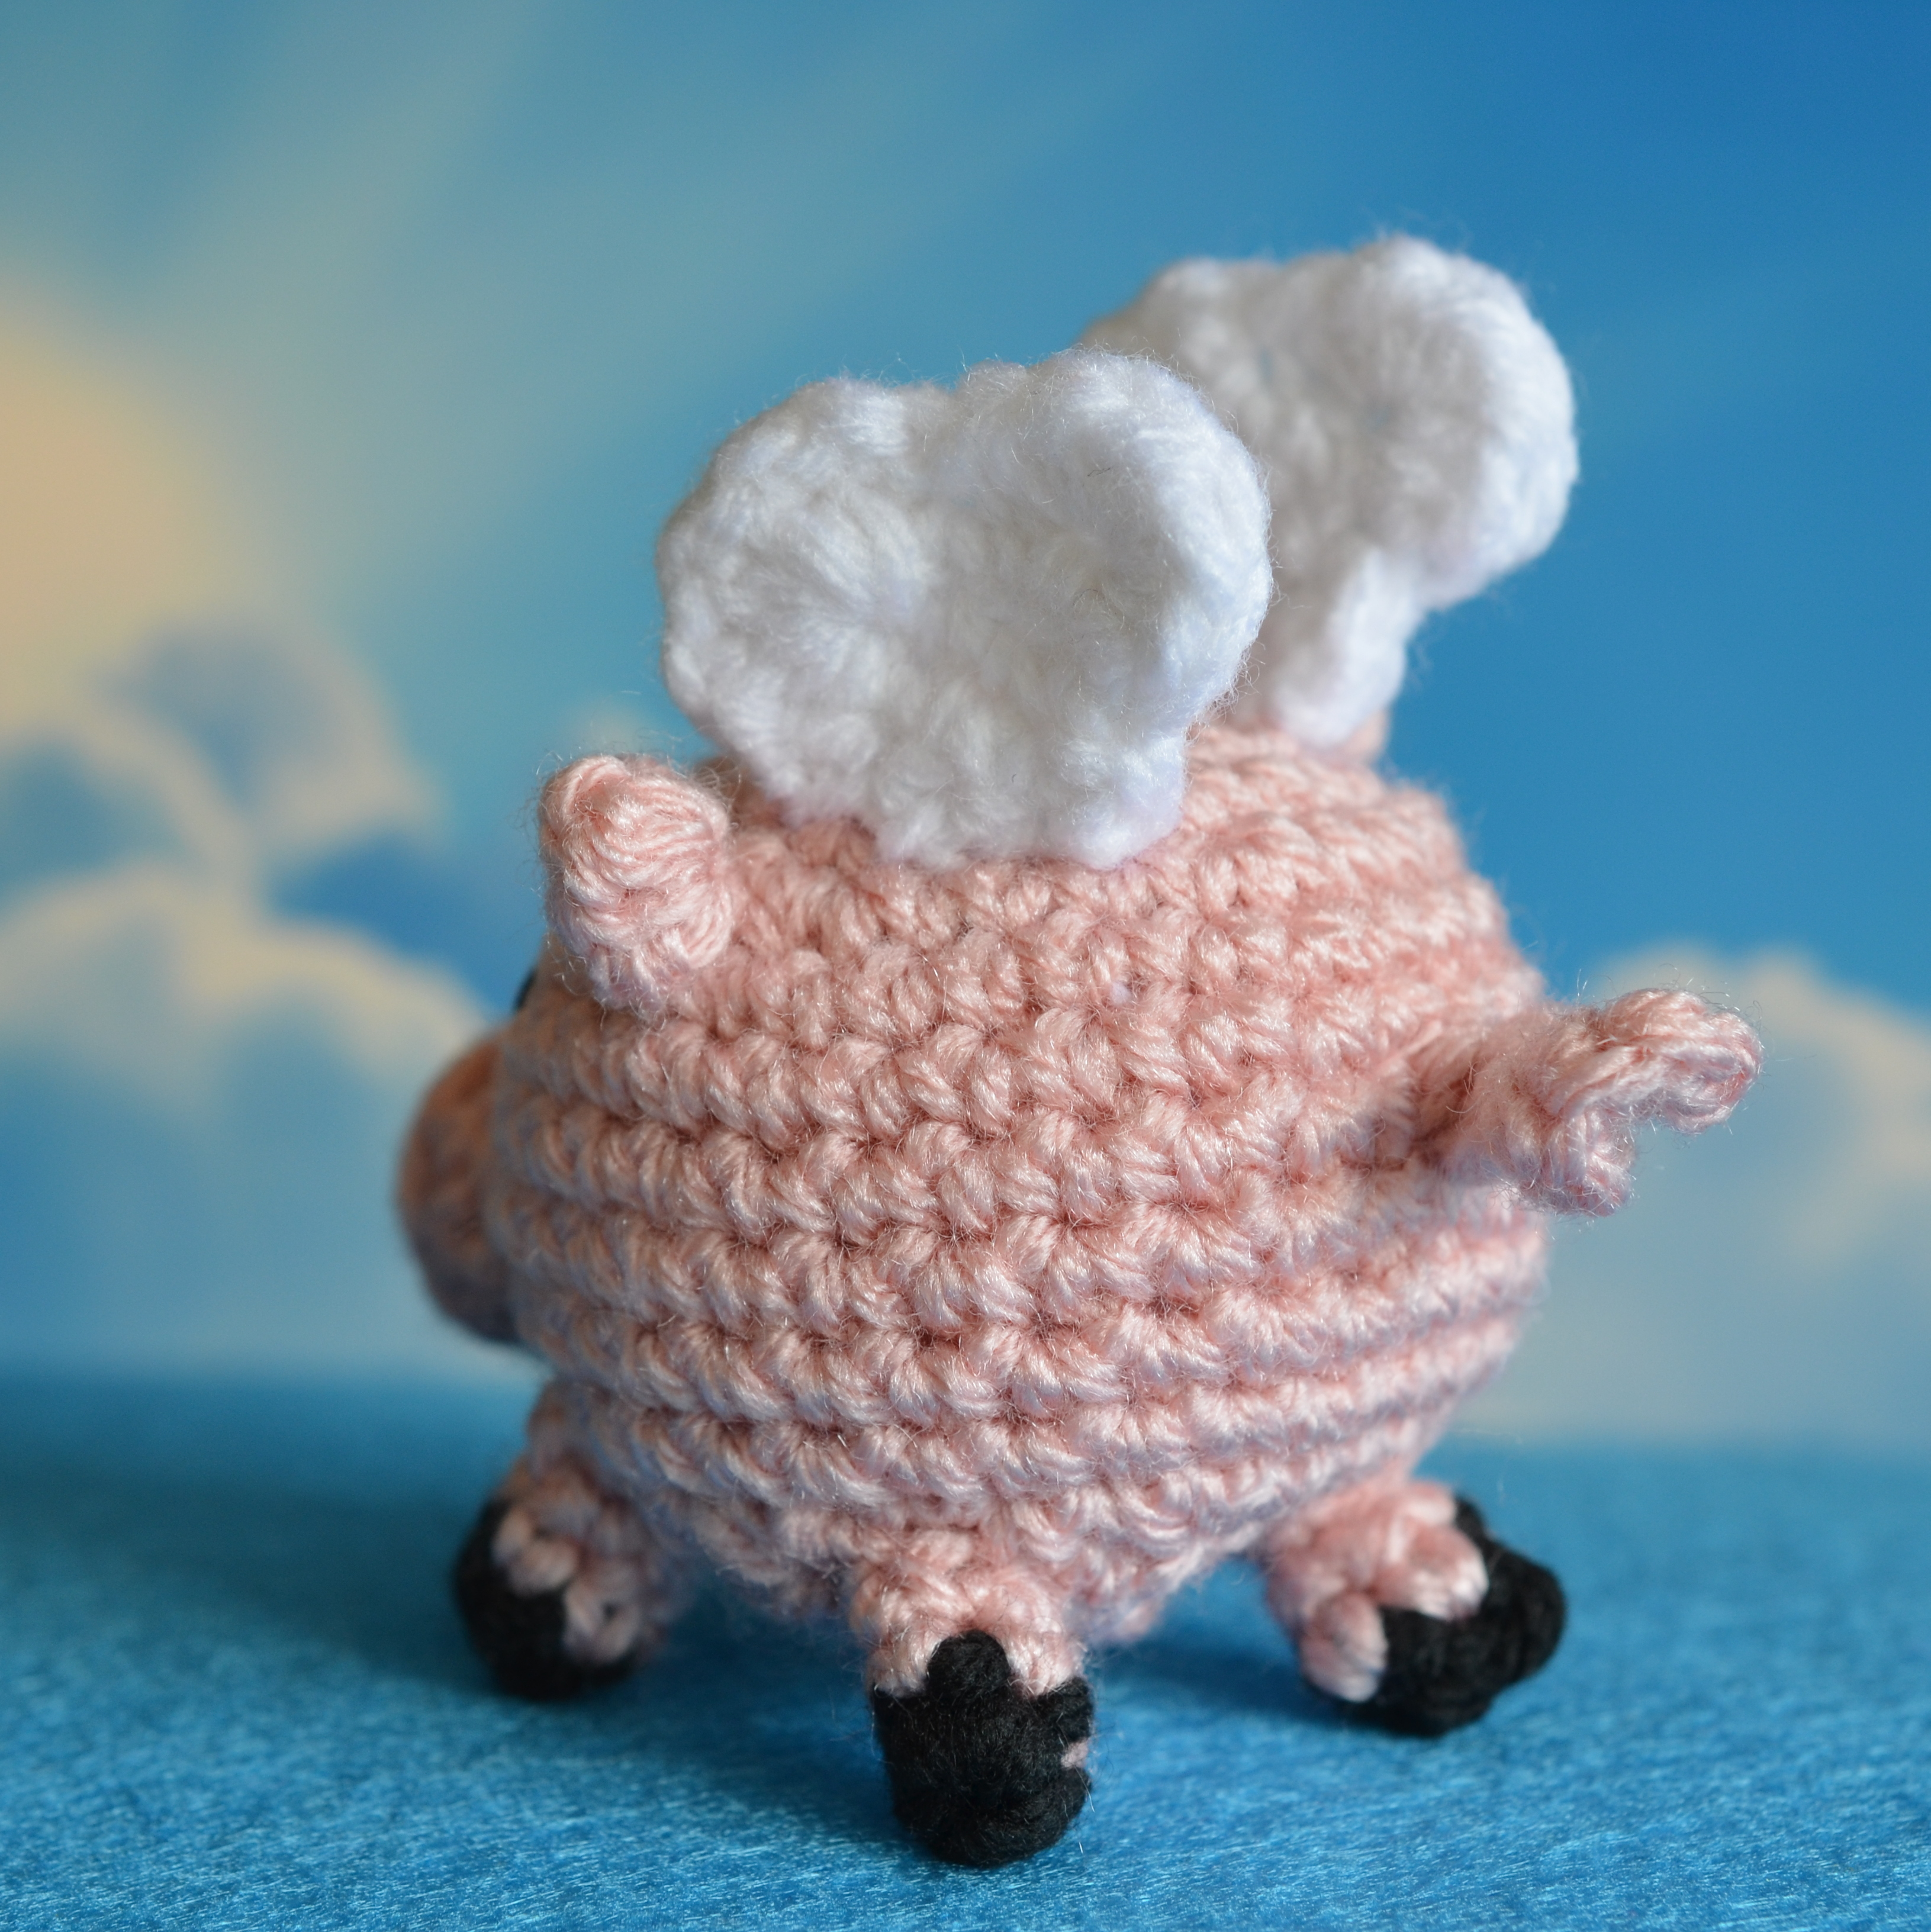 Flying Pig Crochet Pattern - Pops de Milk - Pops de Milk